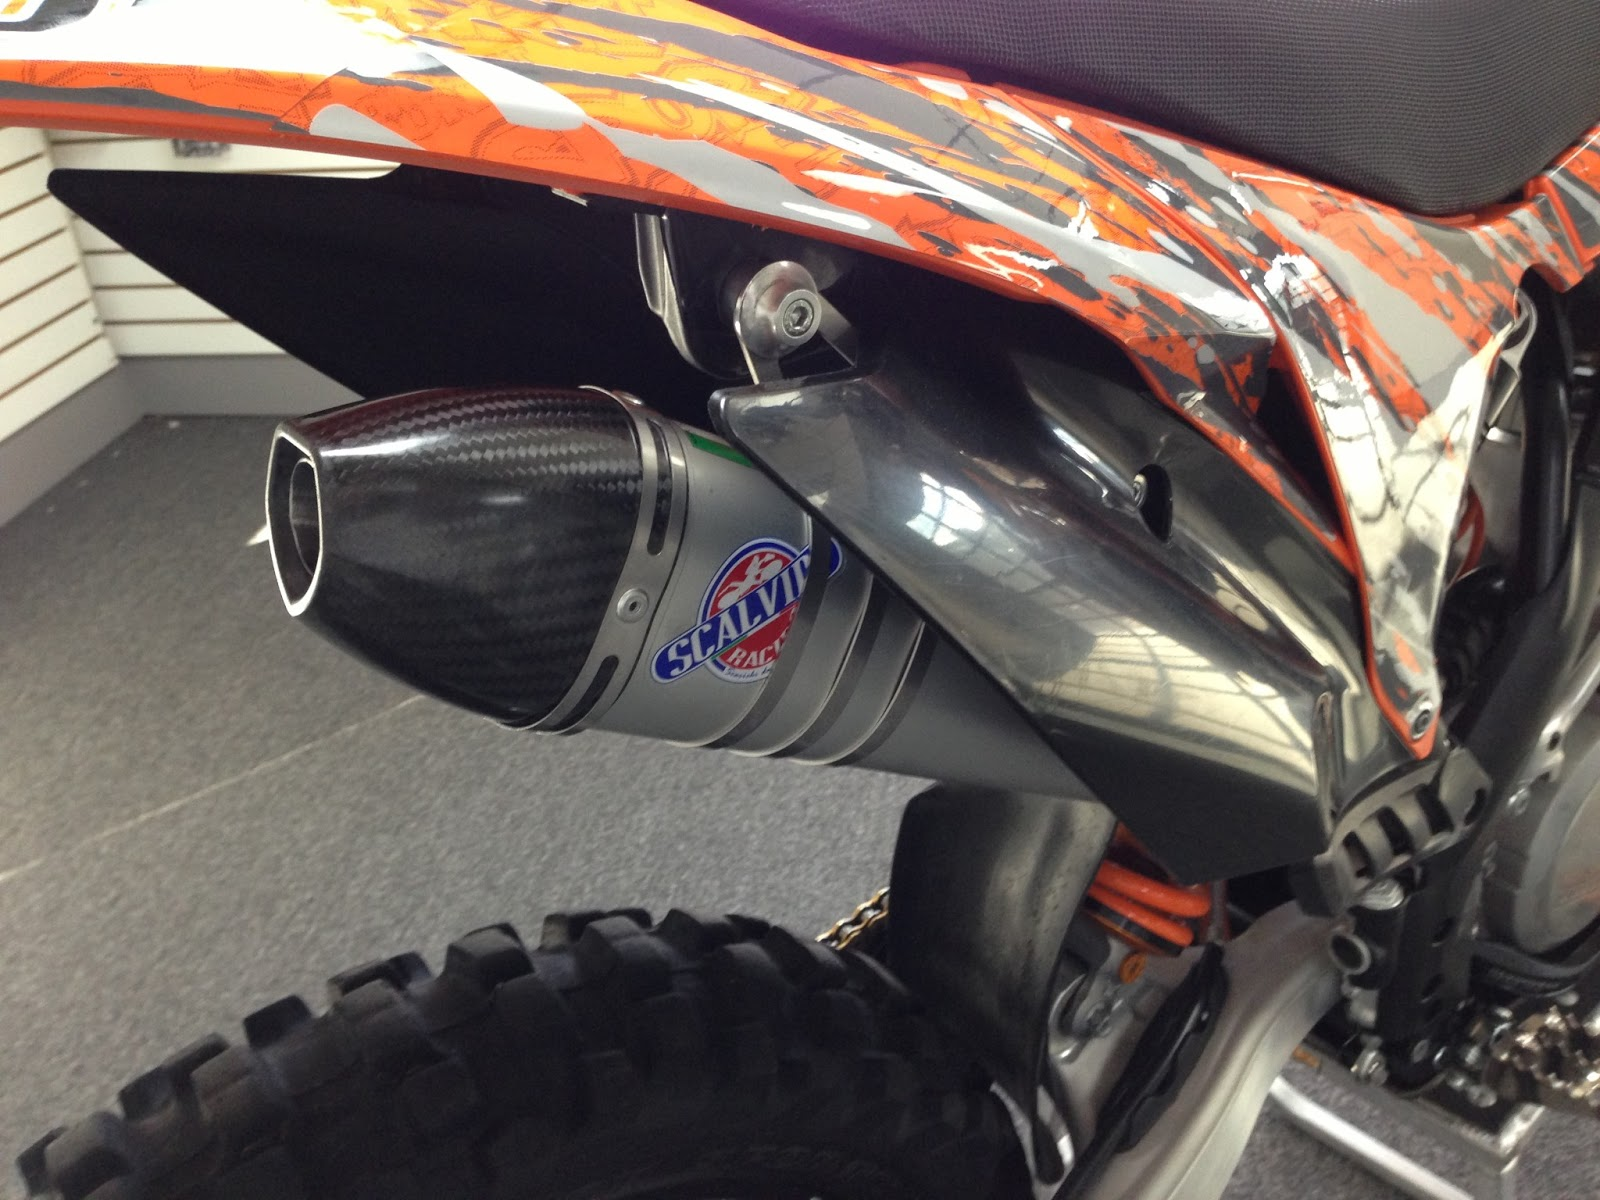 Scalvini Exhaust For The KTM 300 2011 KTM 300 XC-W